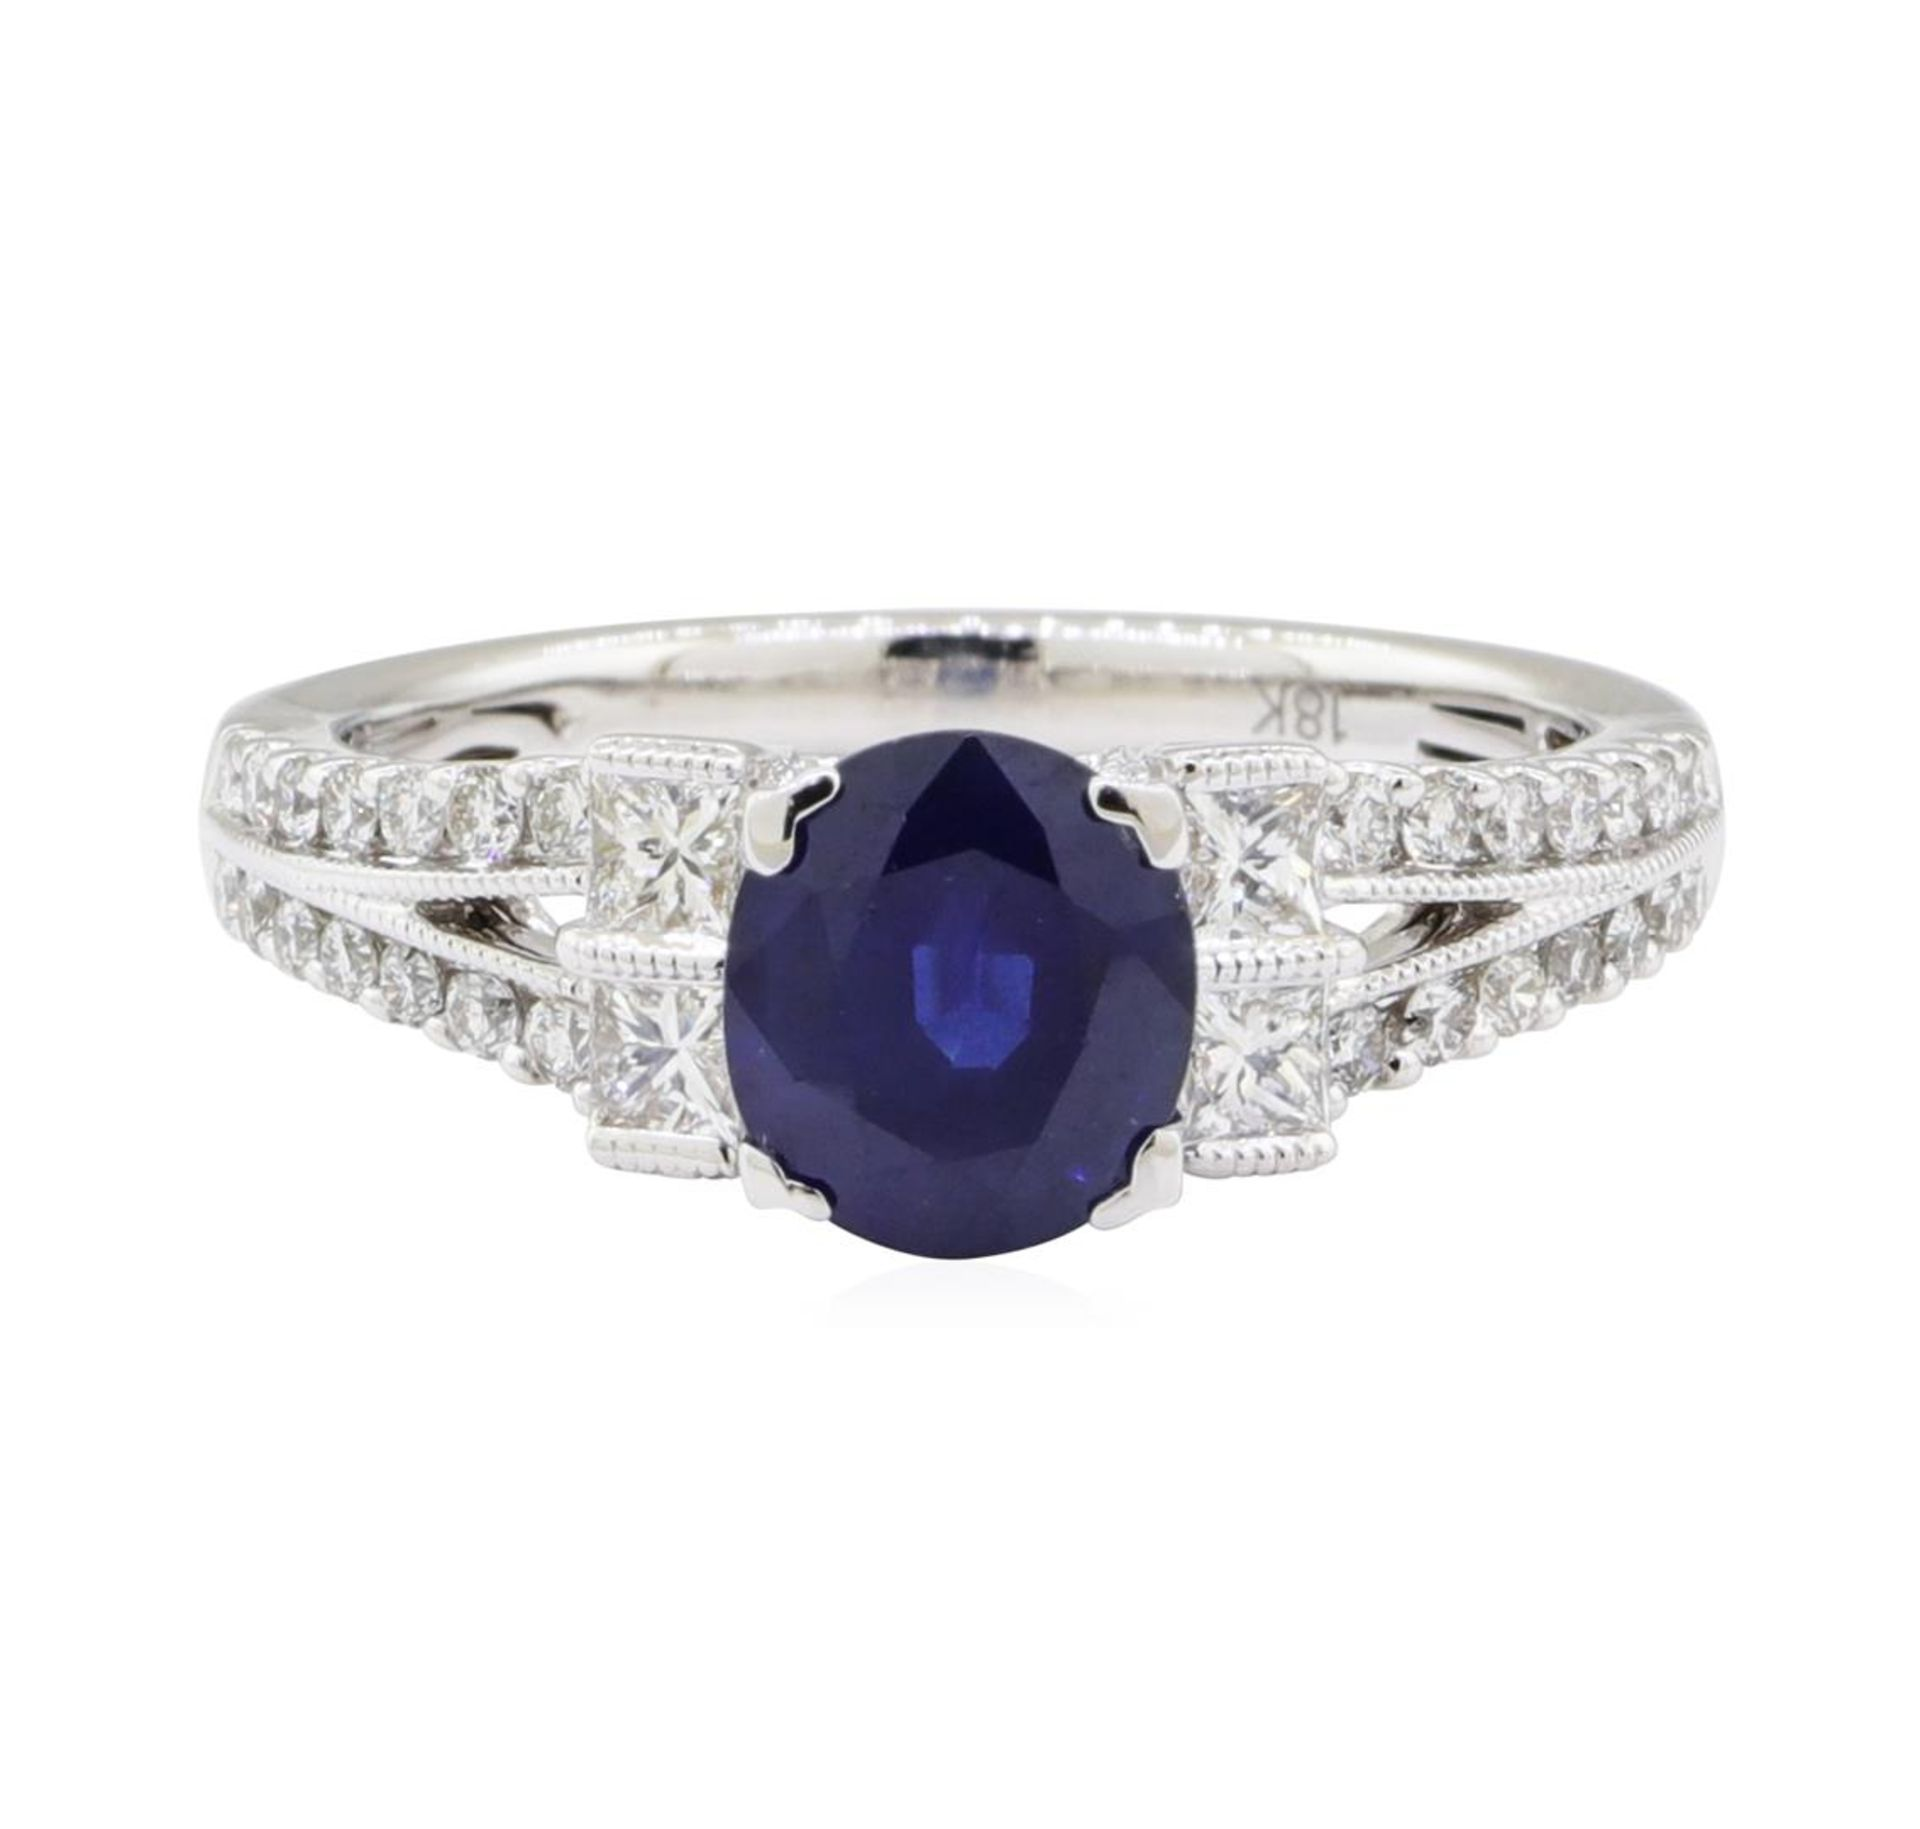 1.98 ctw Sapphire and Diamond Ring - 18KT White Gold - Image 2 of 5